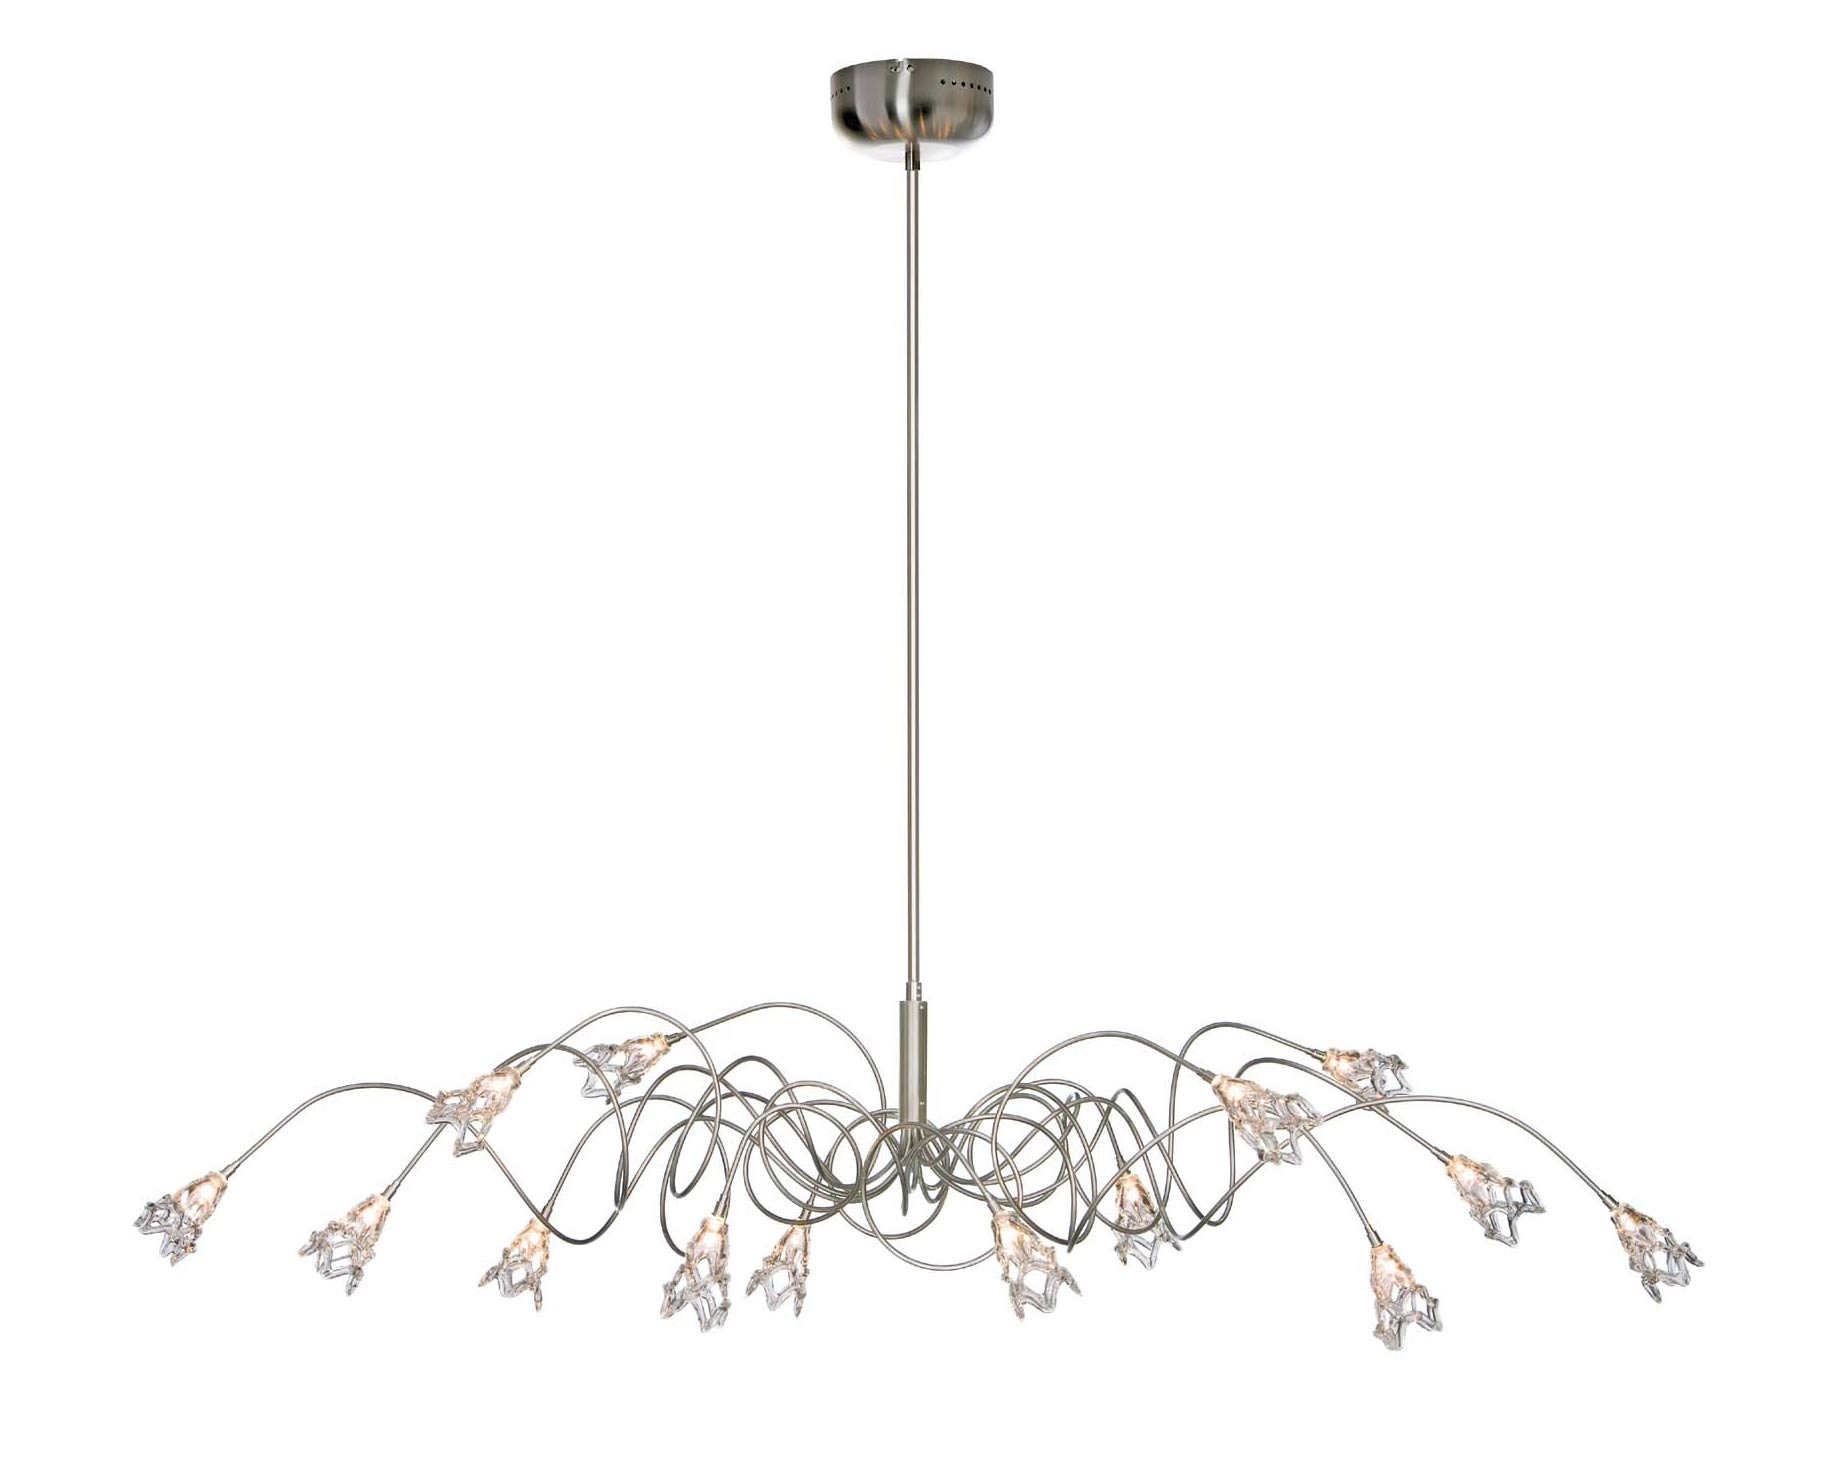 Flag oval 14-light chandelier with glass flowers. Harco Loor.